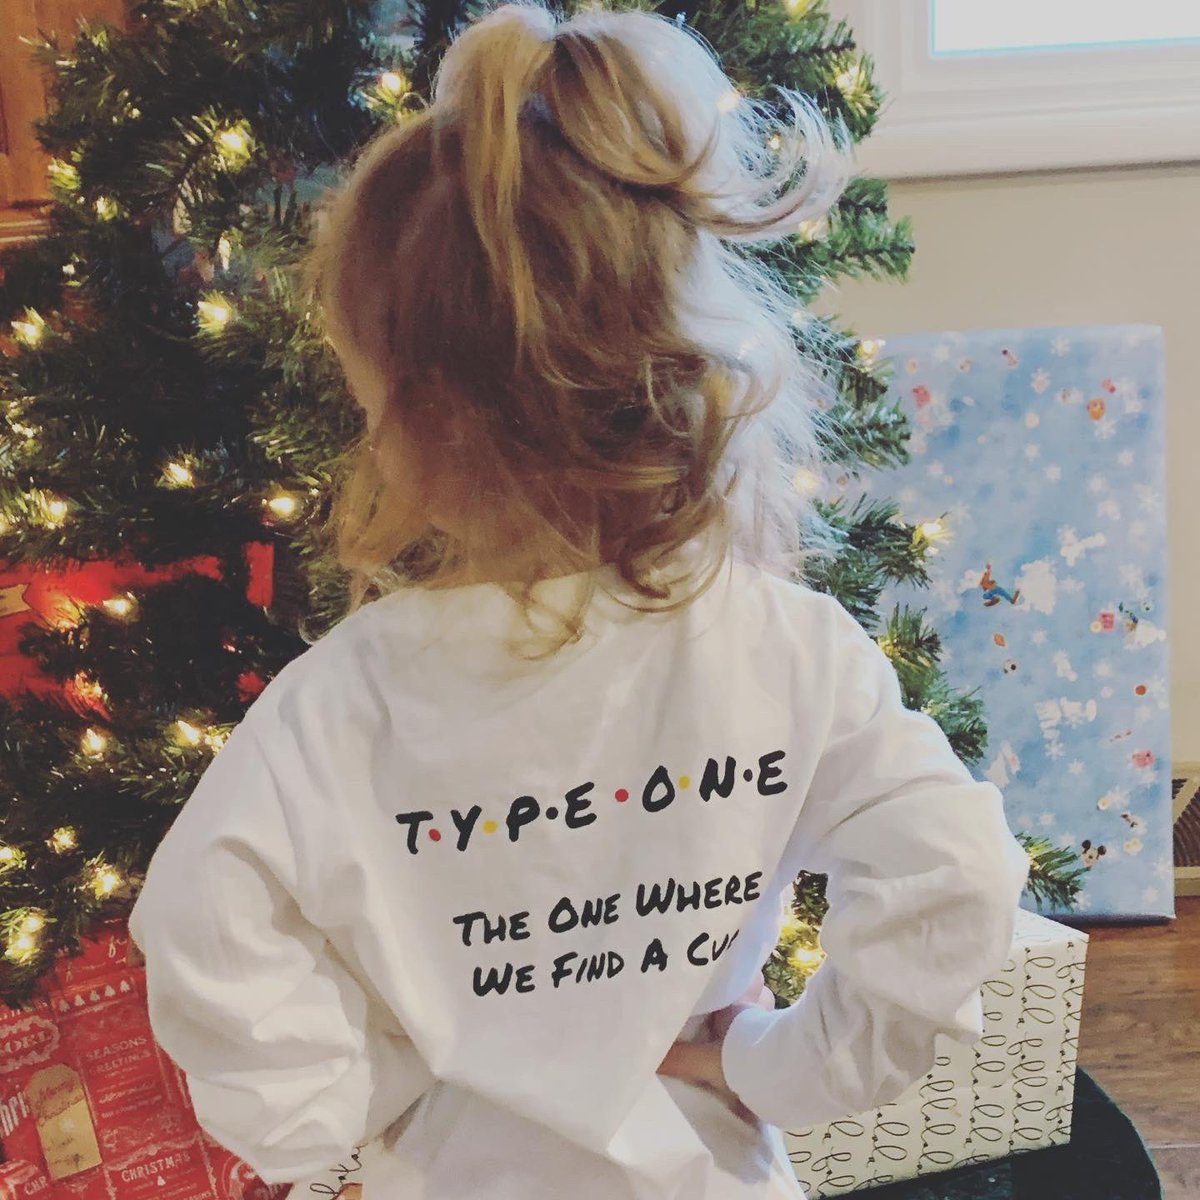 test Twitter Media - My cousin @poehleinmj was diagnosed with #type1 at 4 years old. She's one of the strongest women I've met. We must find a cure. Until then I'll keep raising awareness. #theonewherewefindacure #mackspack https://t.co/Hlcj4lvMgi